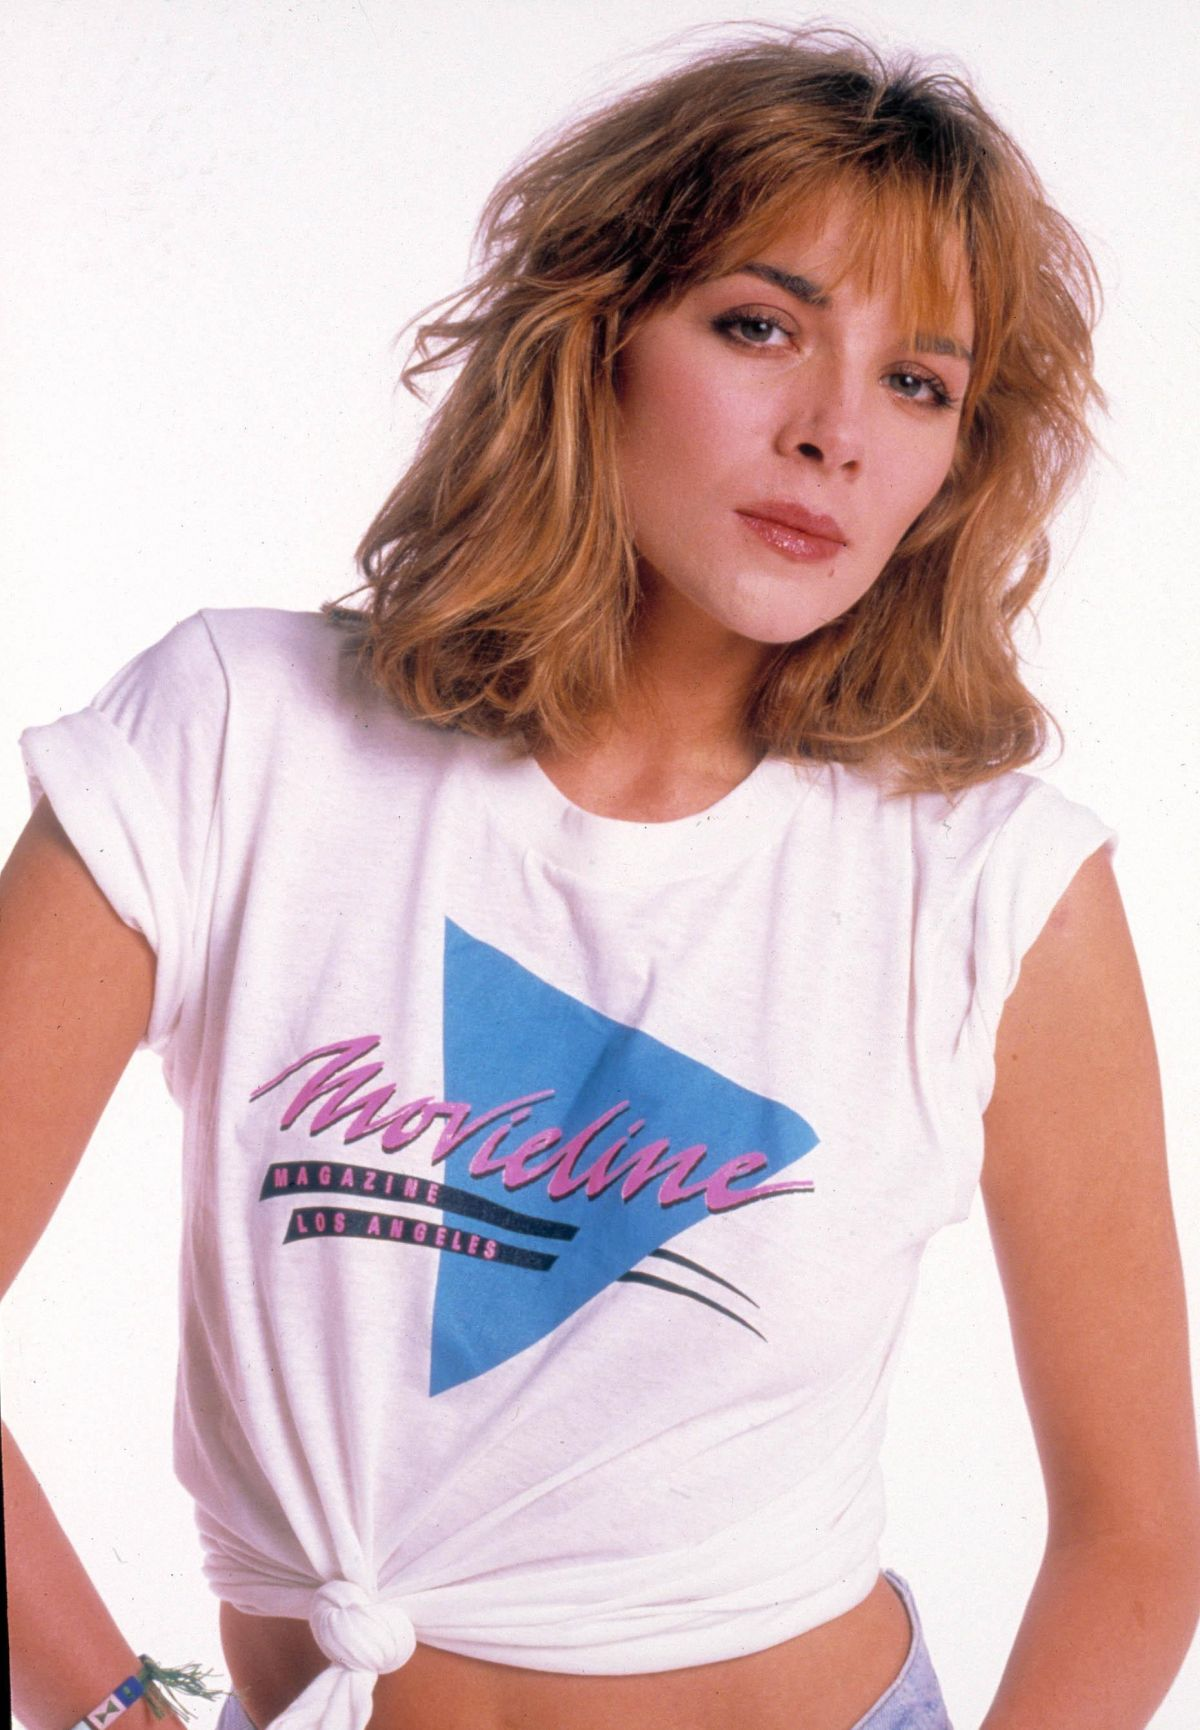 Kim Cattrall At 1987 Steve Schapiro Photoshoot